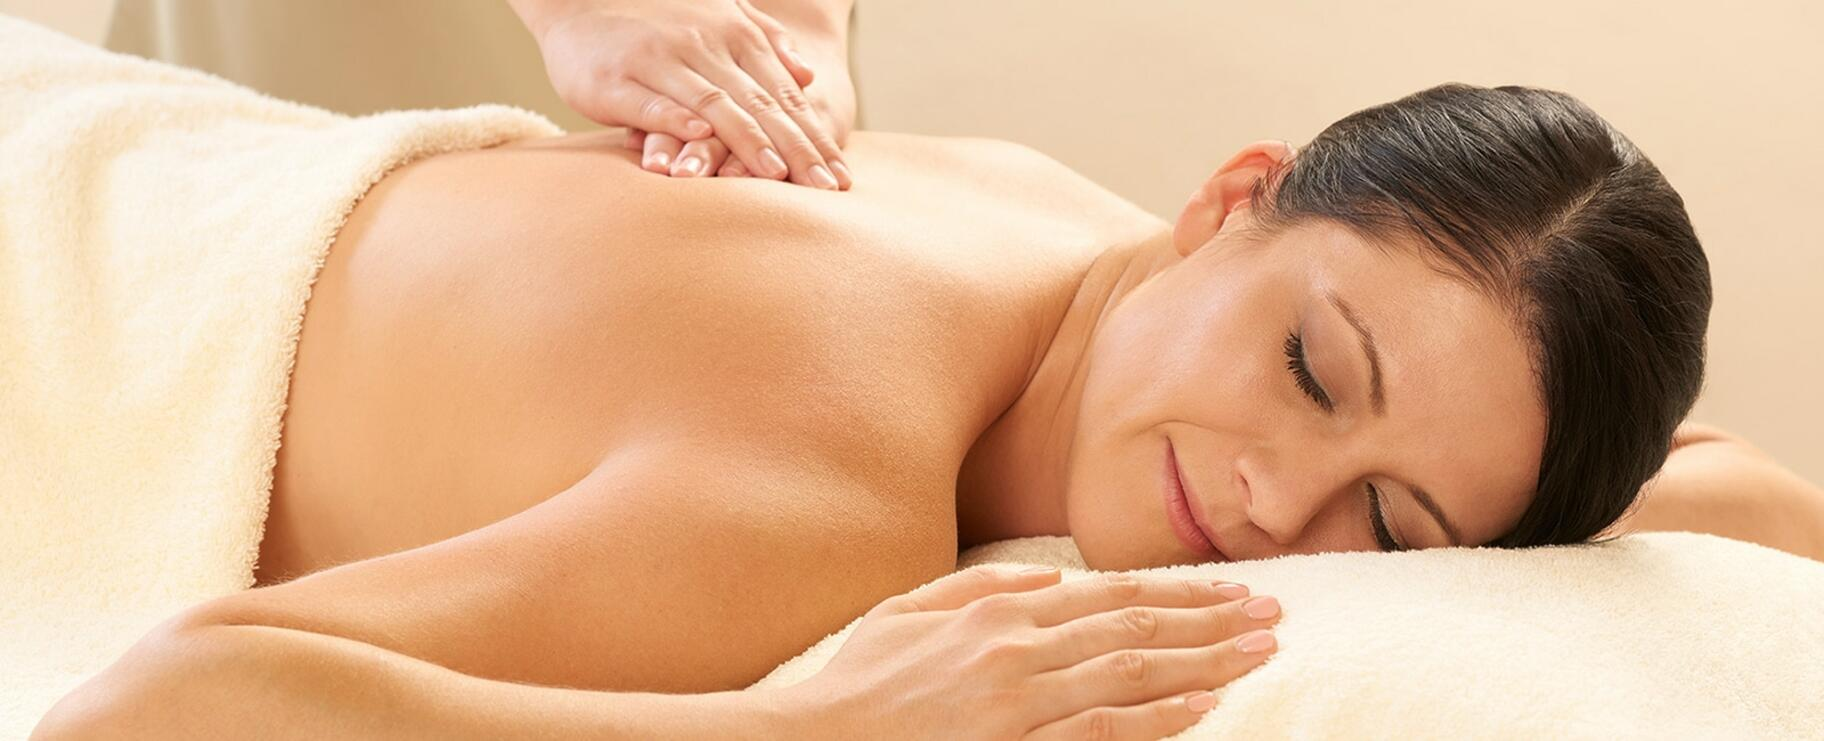 A lady receiving a massage at the Spa in the hotel